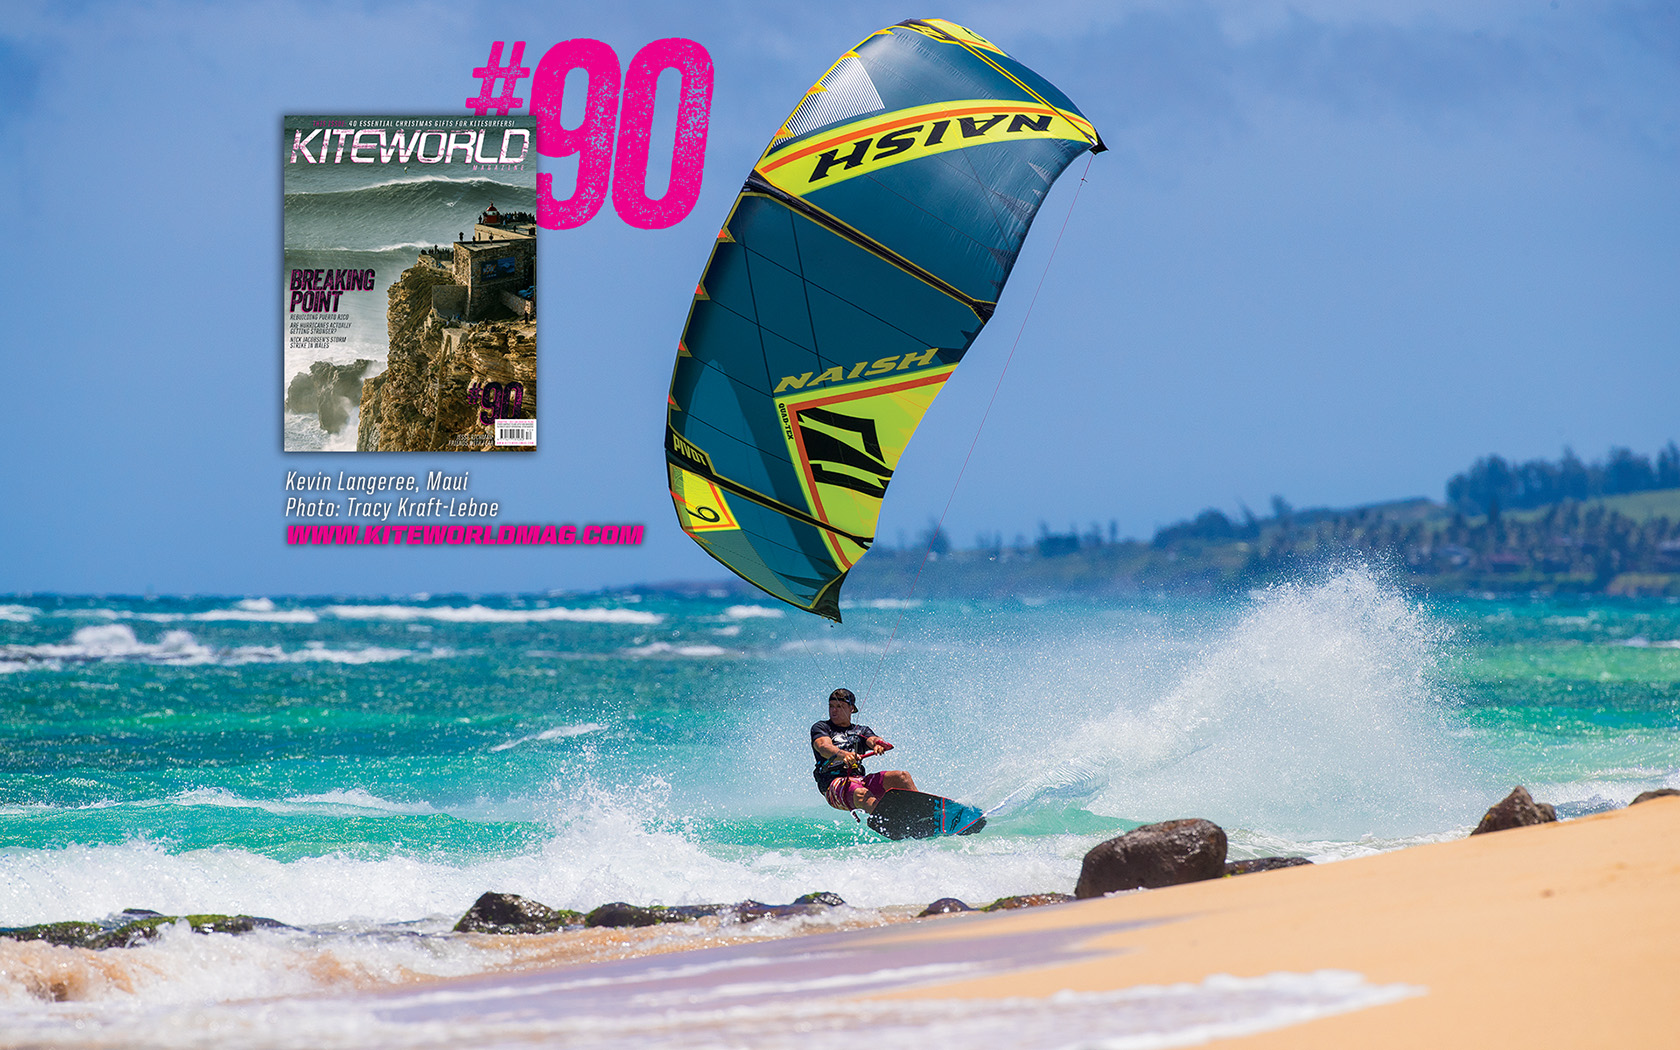 Kevin Langeree, Maui - Kiteworld issue 90 gallery